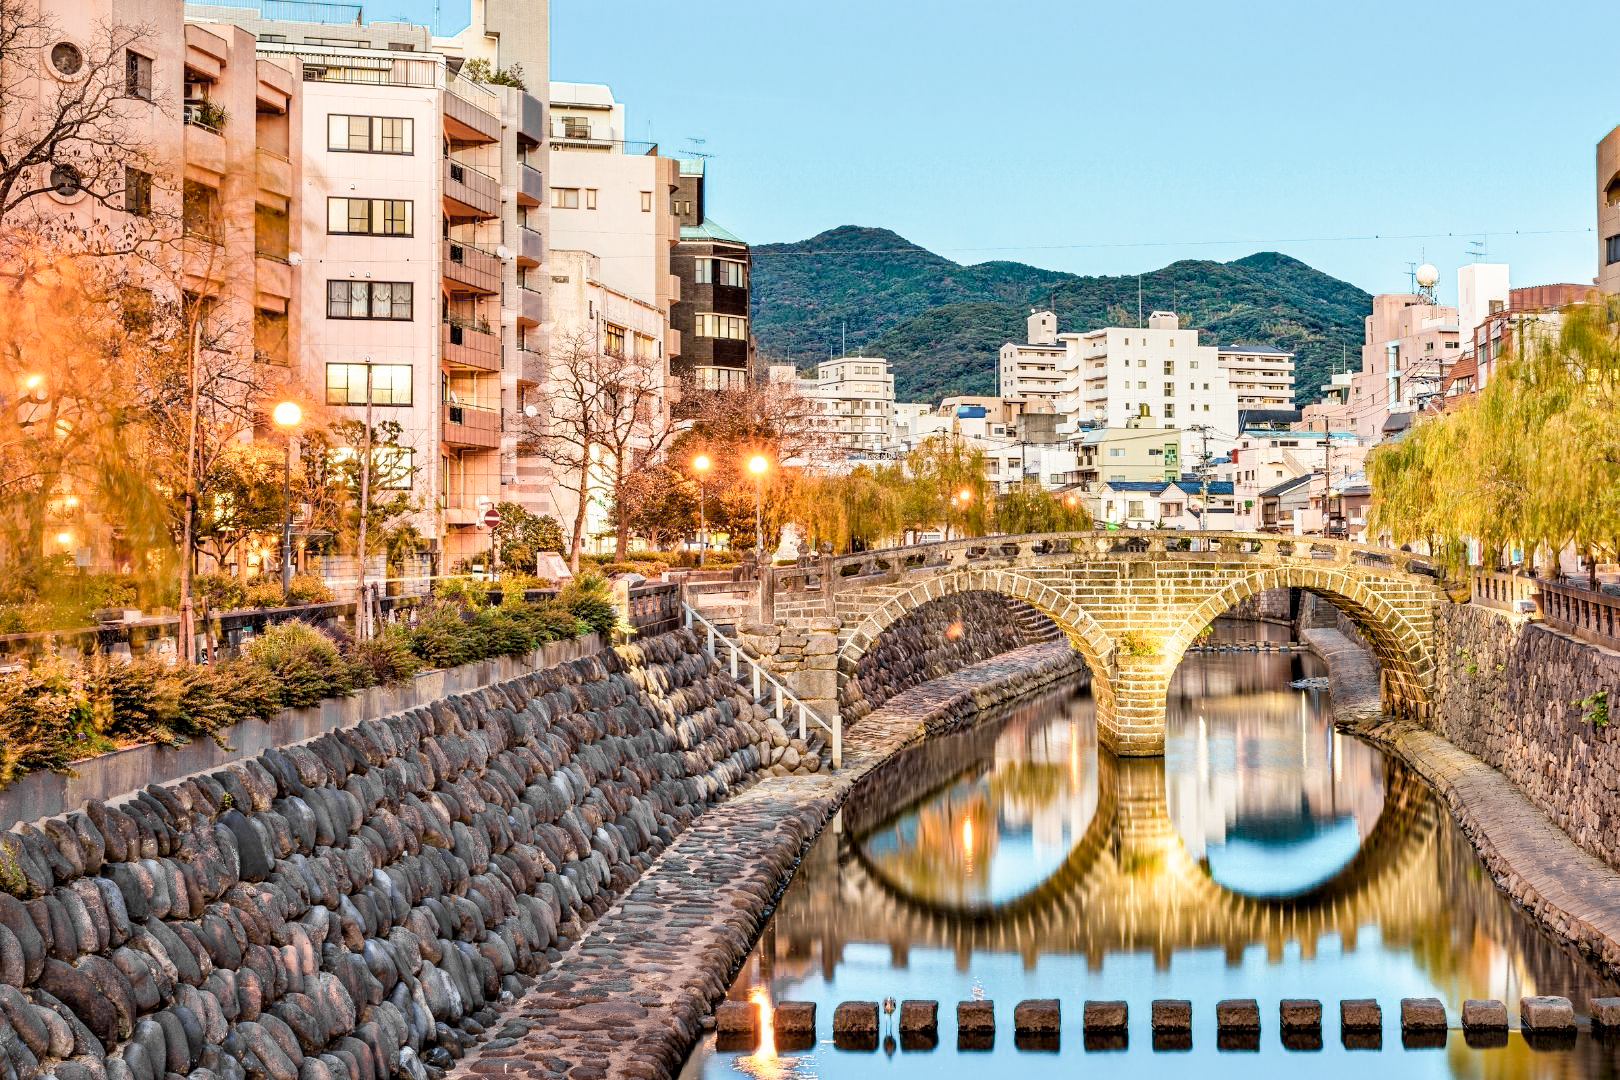 What to Eat in Nagasaki: Meganebashi, Nagasaki's famous landmark bridge with two rounded arches that when reflected in the river below look like a pair of glasses.